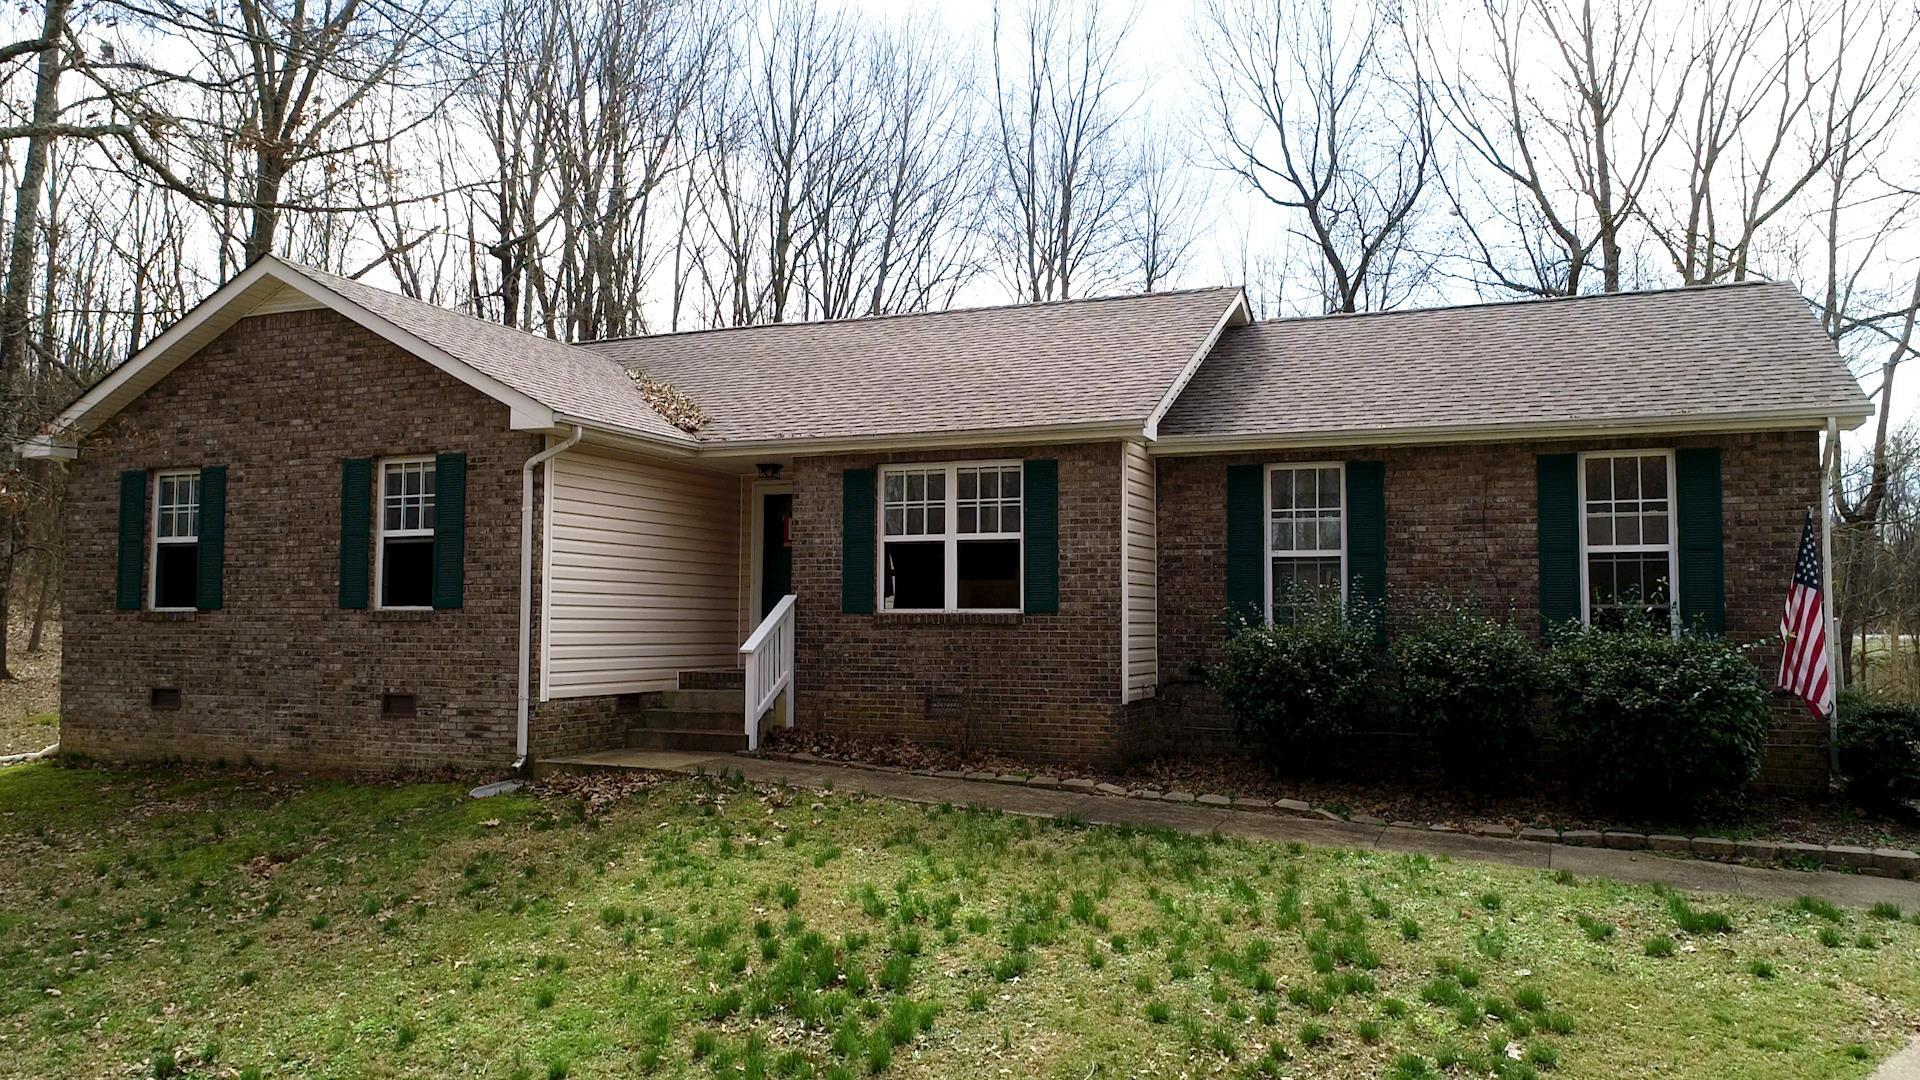 3420 Trough Springs Rd, Clarksville, TN 37043 - Clarksville, TN real estate listing